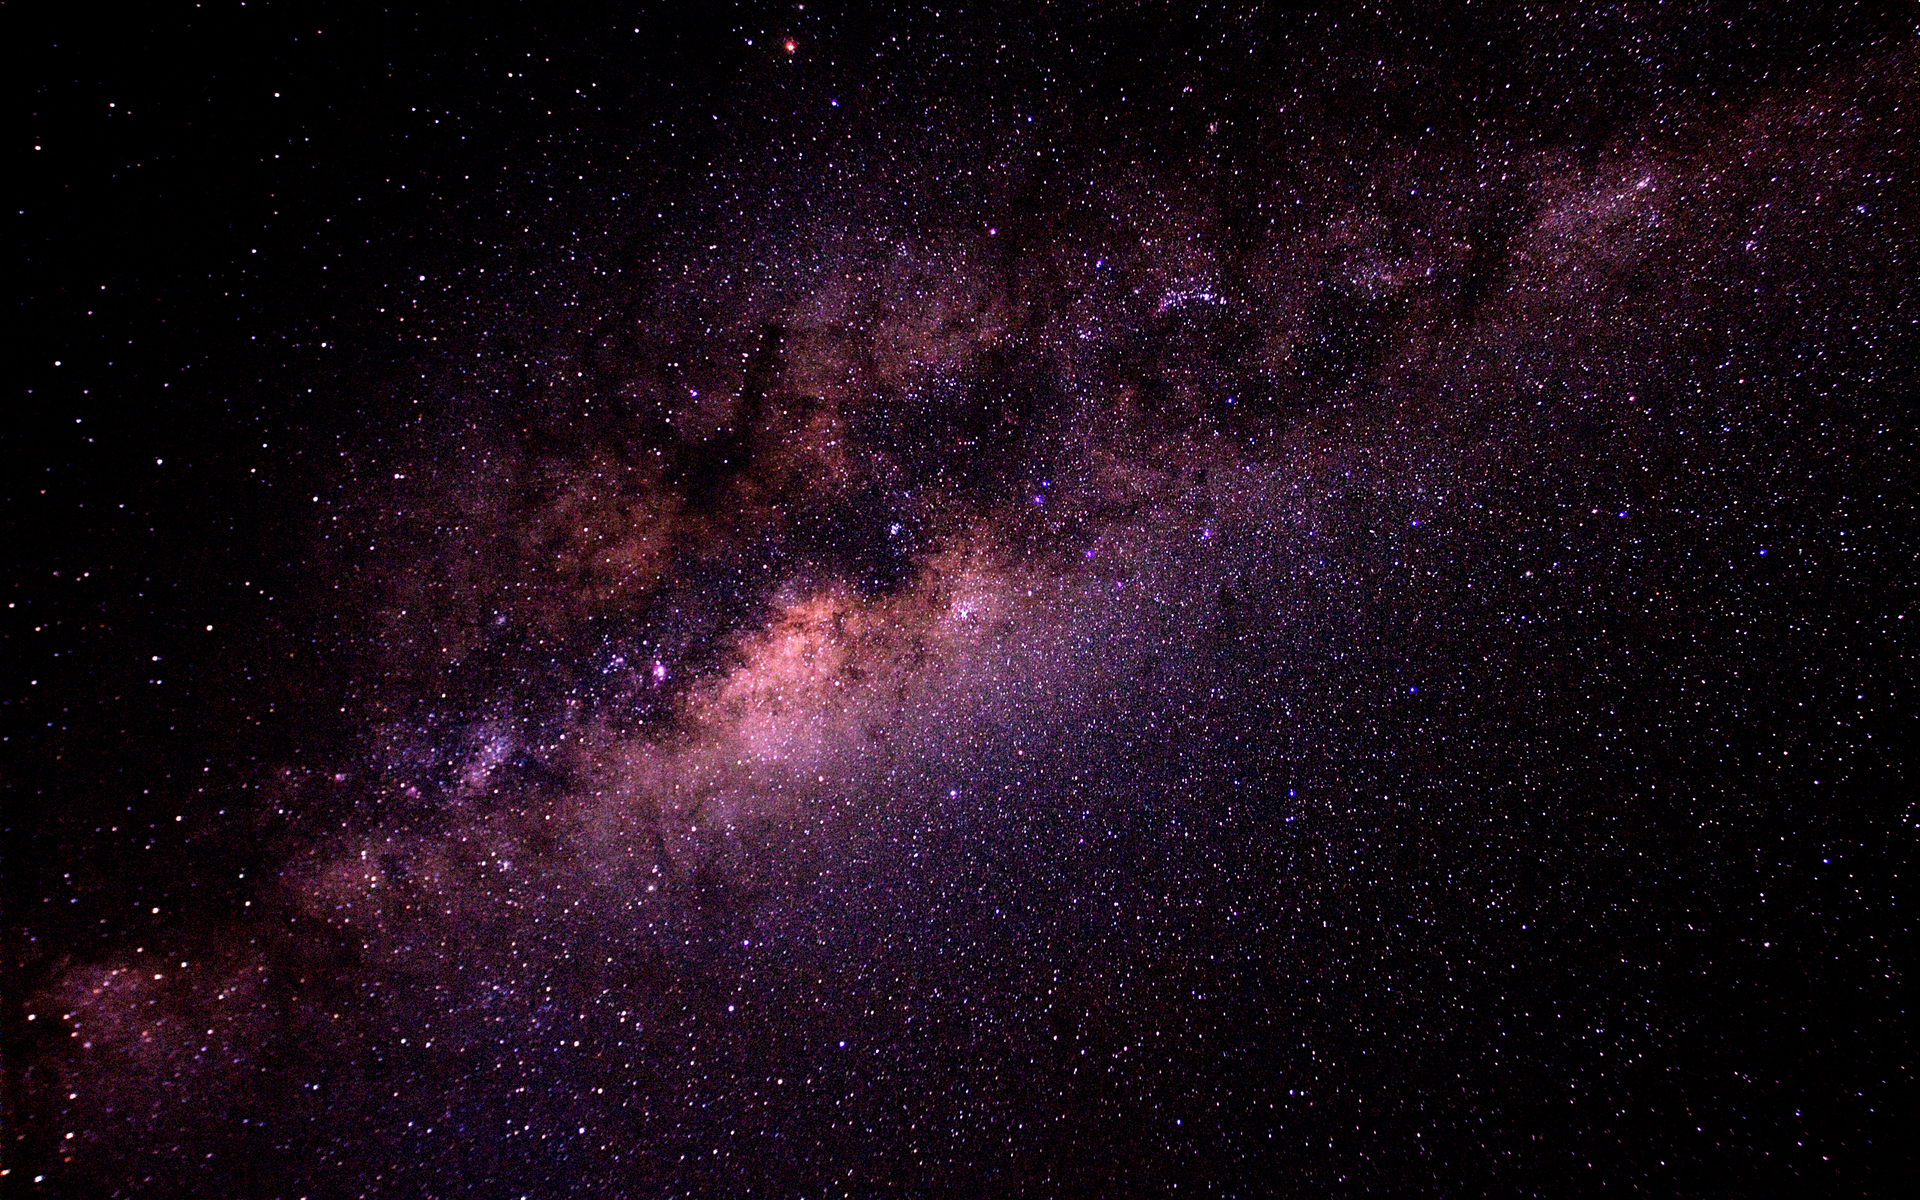 Cool Space Galaxy Backgrounds   Pics about space 1920x1200